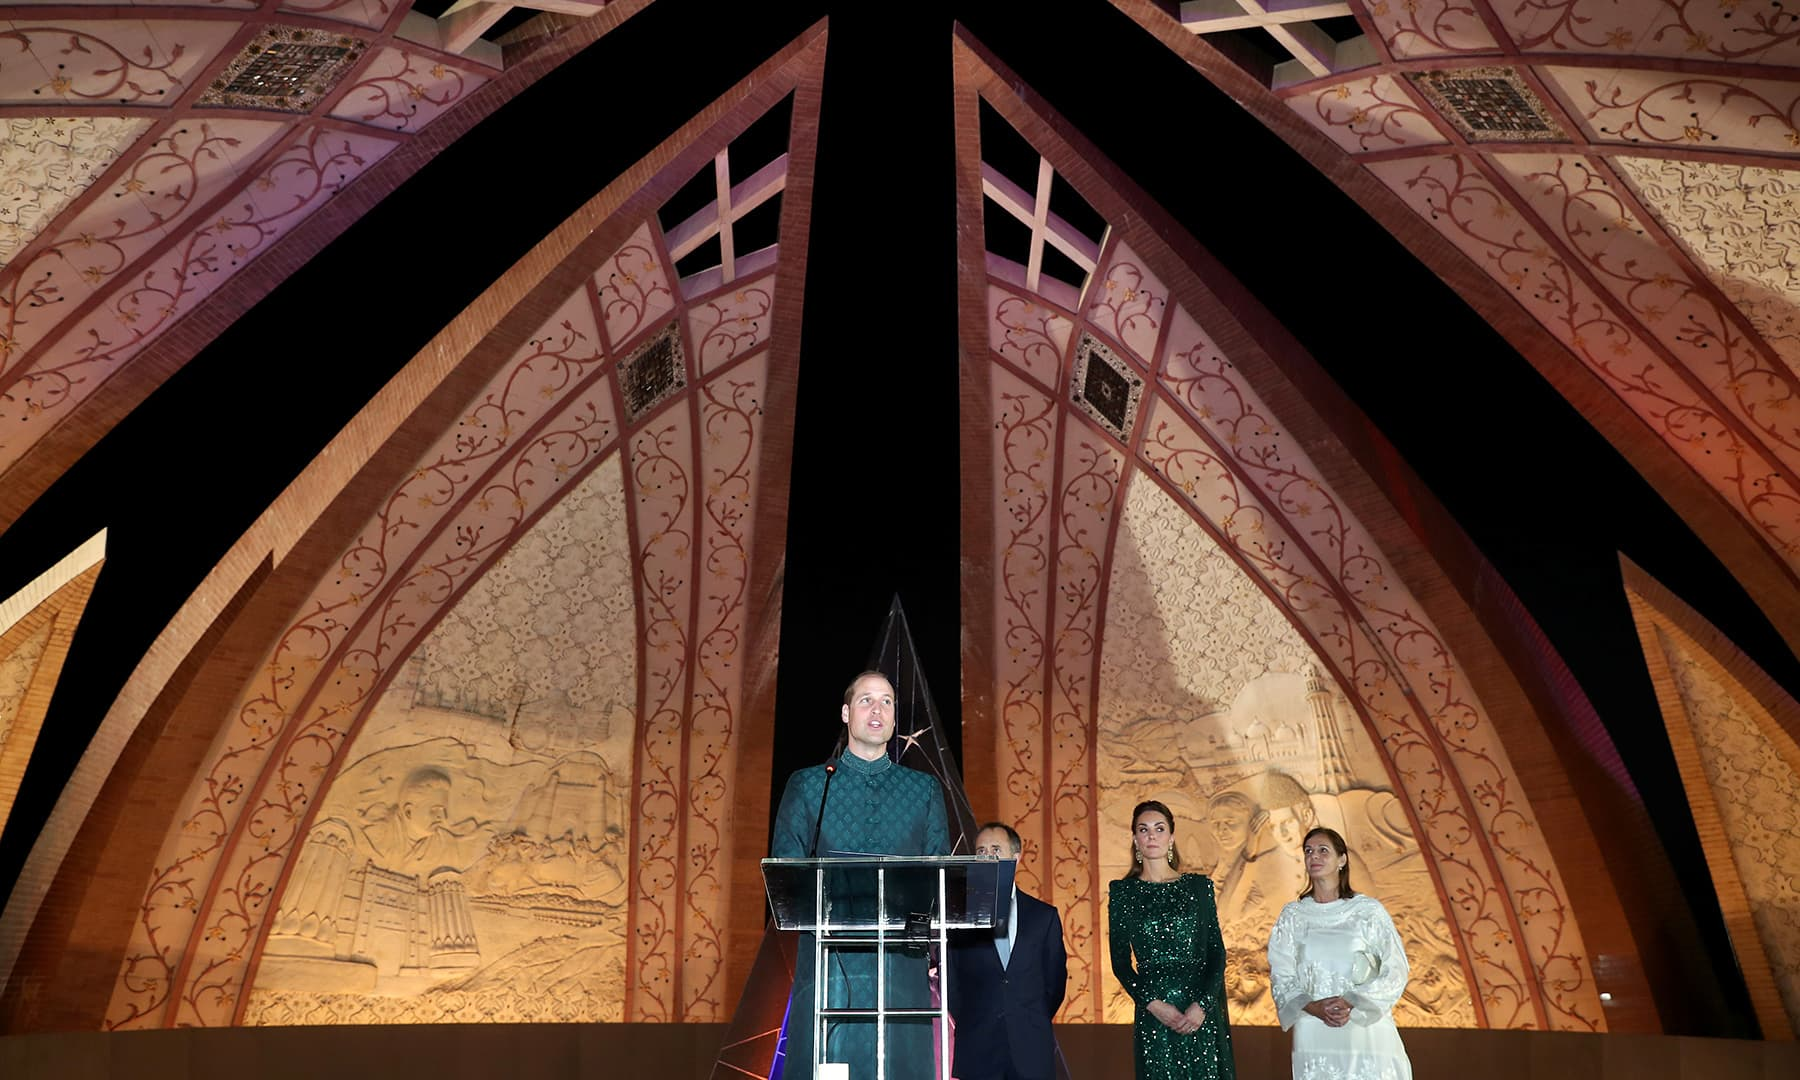 Prince William makes a speech as he attends a special reception with Catherine, Duchess of Cambridge, hosted by the British High Commissioner to Pakistan, Thomas Drew, at the Pakistan National Monument in Islamabad, October 15. — Reuters